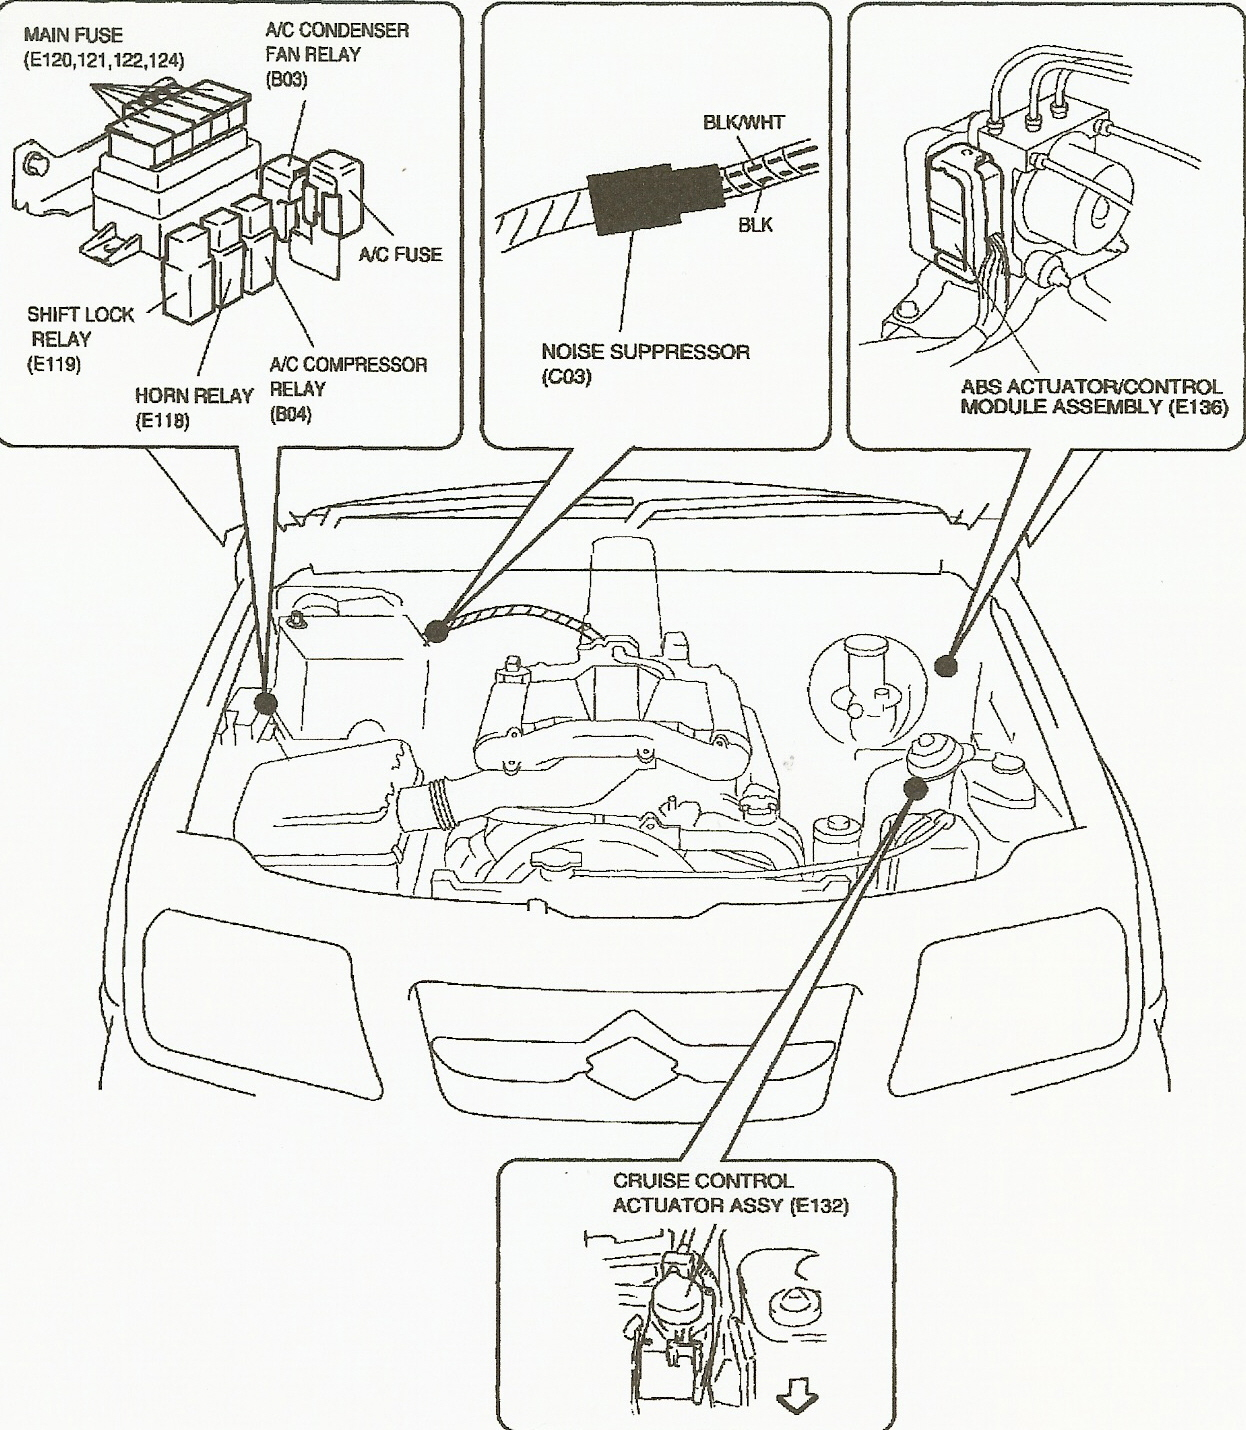 Suzuki Grand Vitara Fuel Filter Location